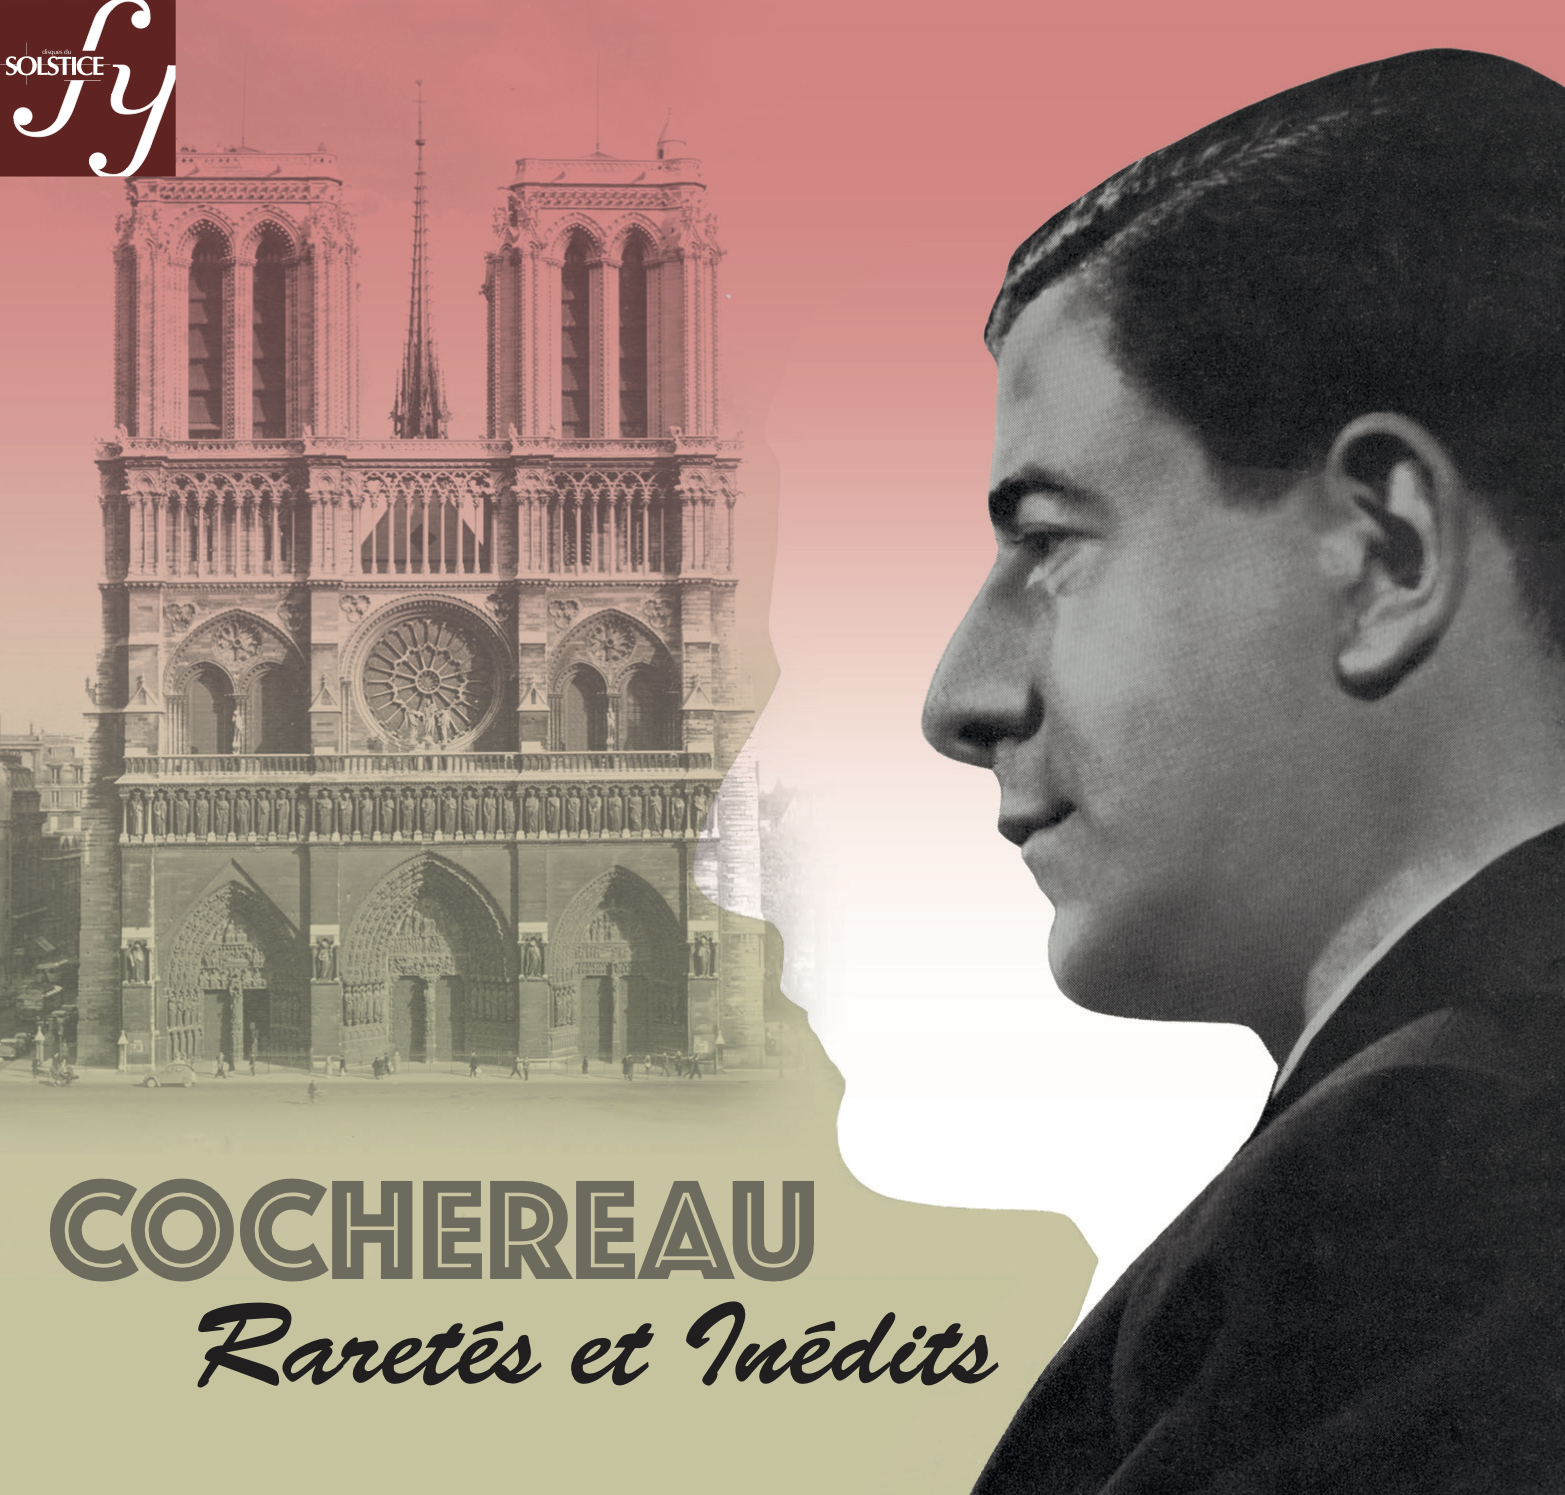 A comprehensive, new collection from Solstice Recordings in Paris, chronicling the life and work of Pierre Cochereau, Titular Organist of Notre-Dame de Paris from 1955-1984.